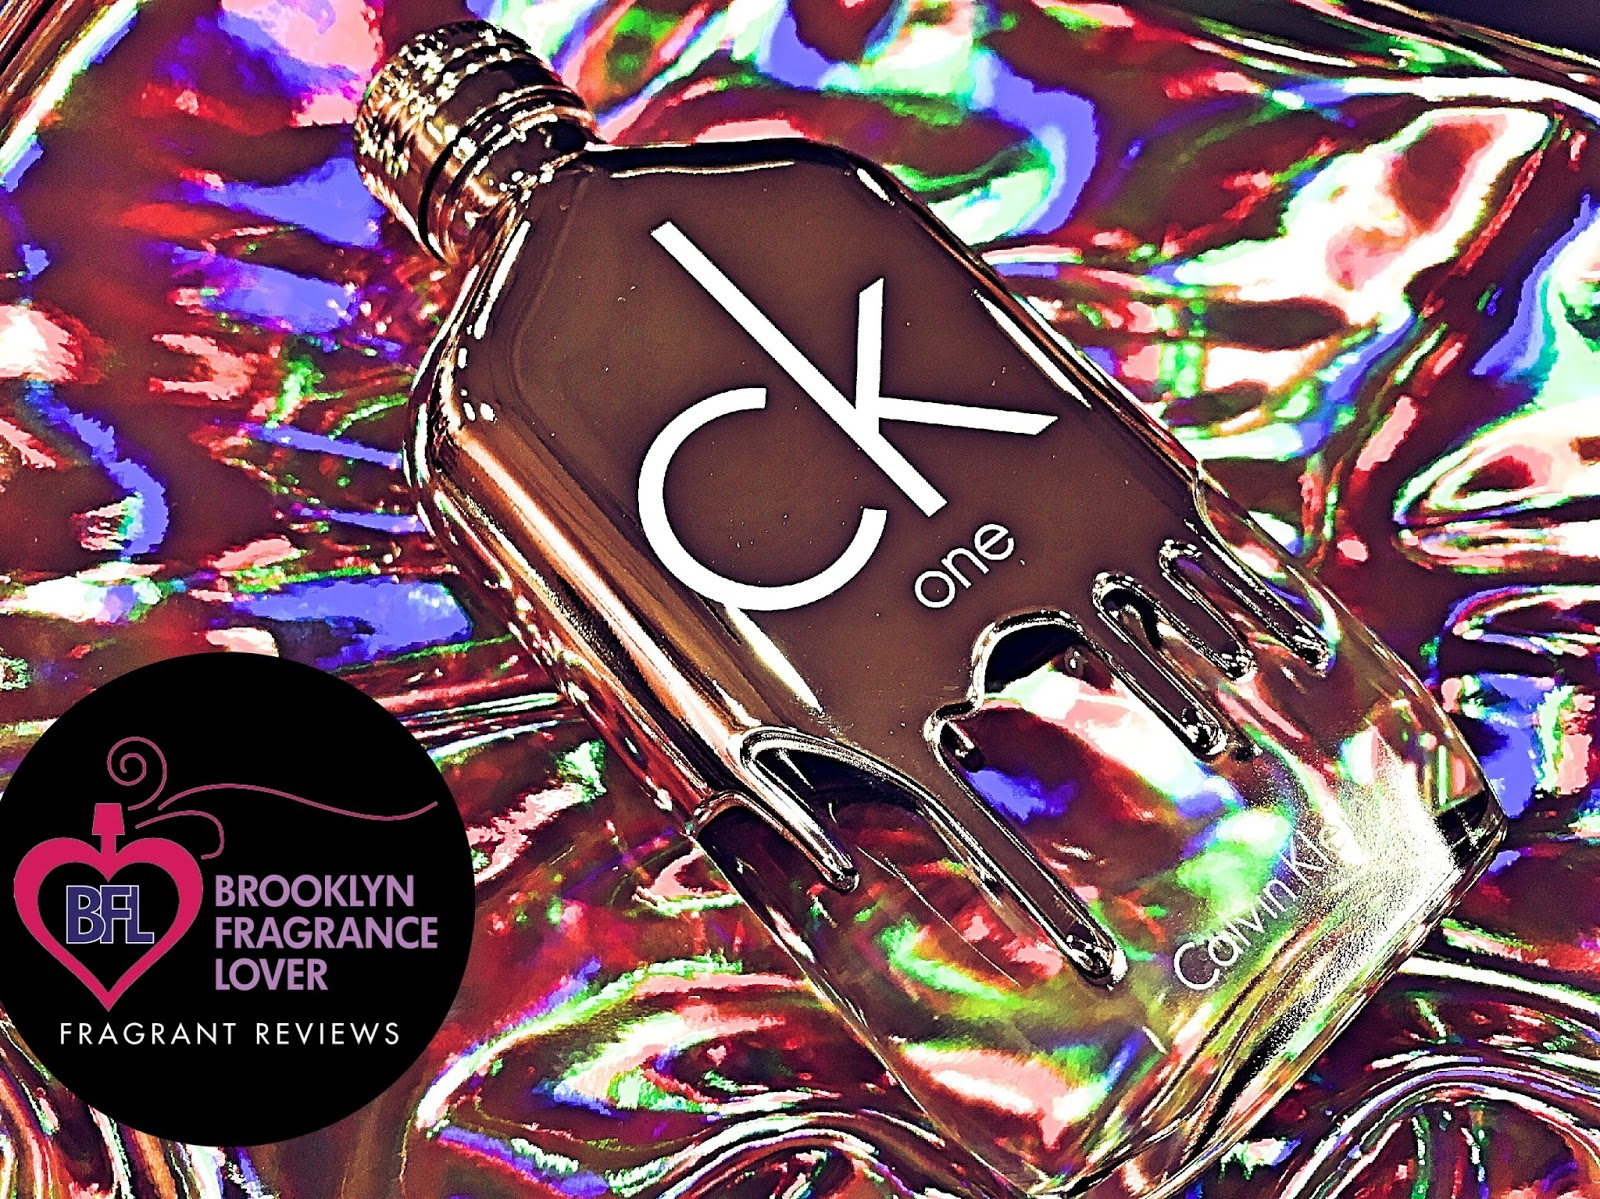 Brooklyn Fragrance Lover New Calvin Klein Ck One Gold Review